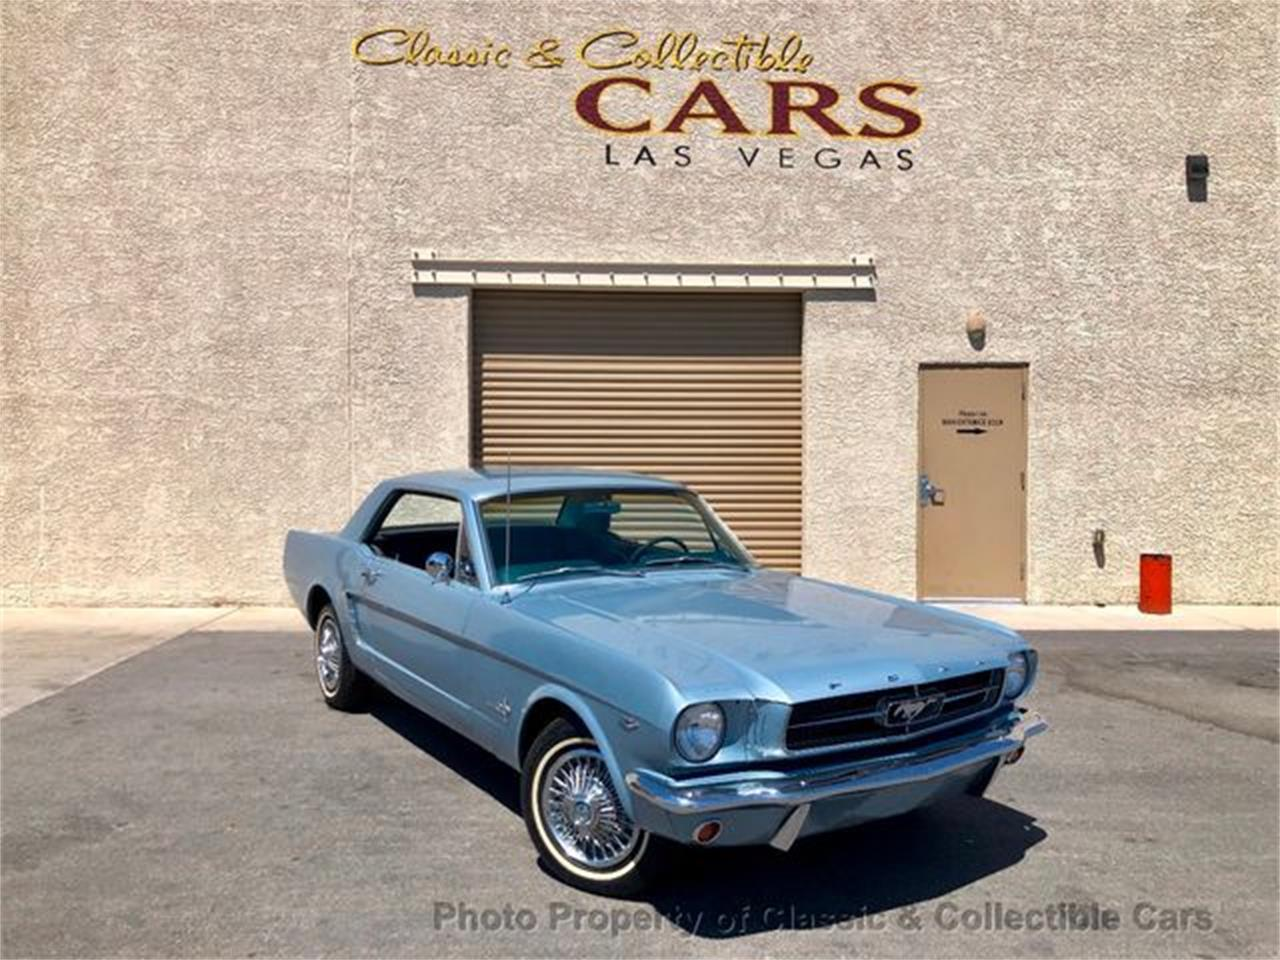 Ford Mustang V8 289 1965 prix tout compris 1965